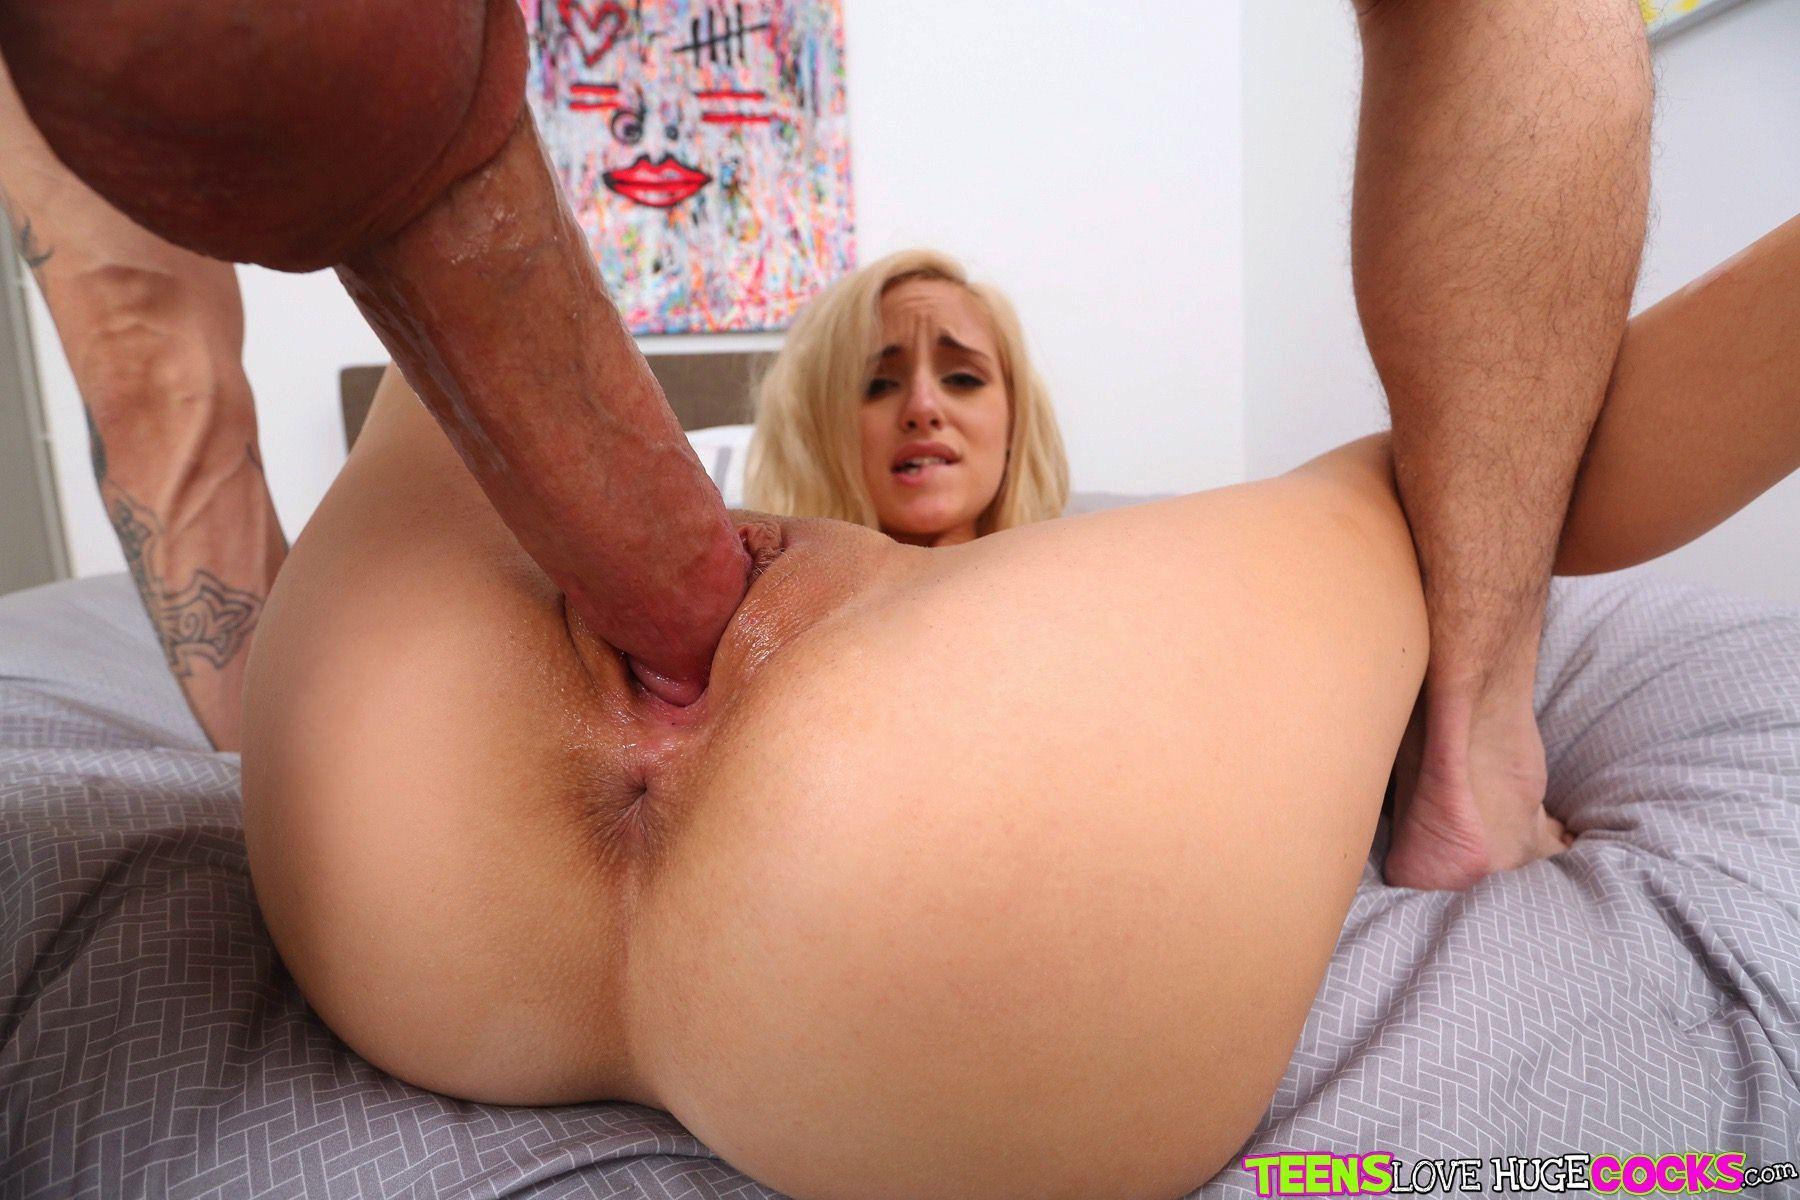 Giant cock fucking tight pussy